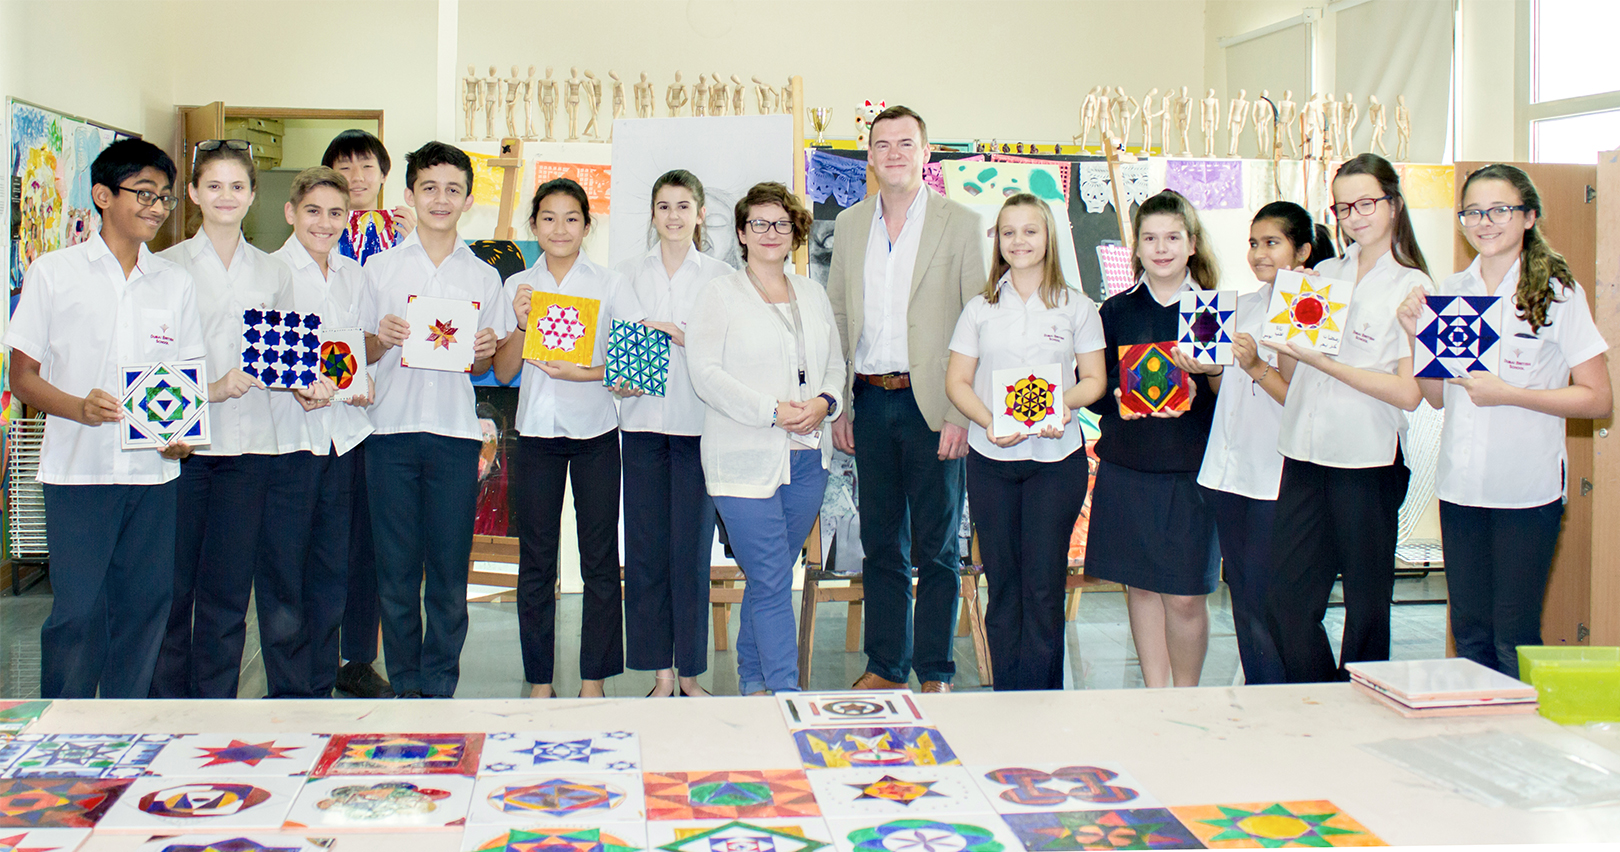 RAK Ceramics Supports Islamic Tile Art through Young Future Designers at the Dubai British School